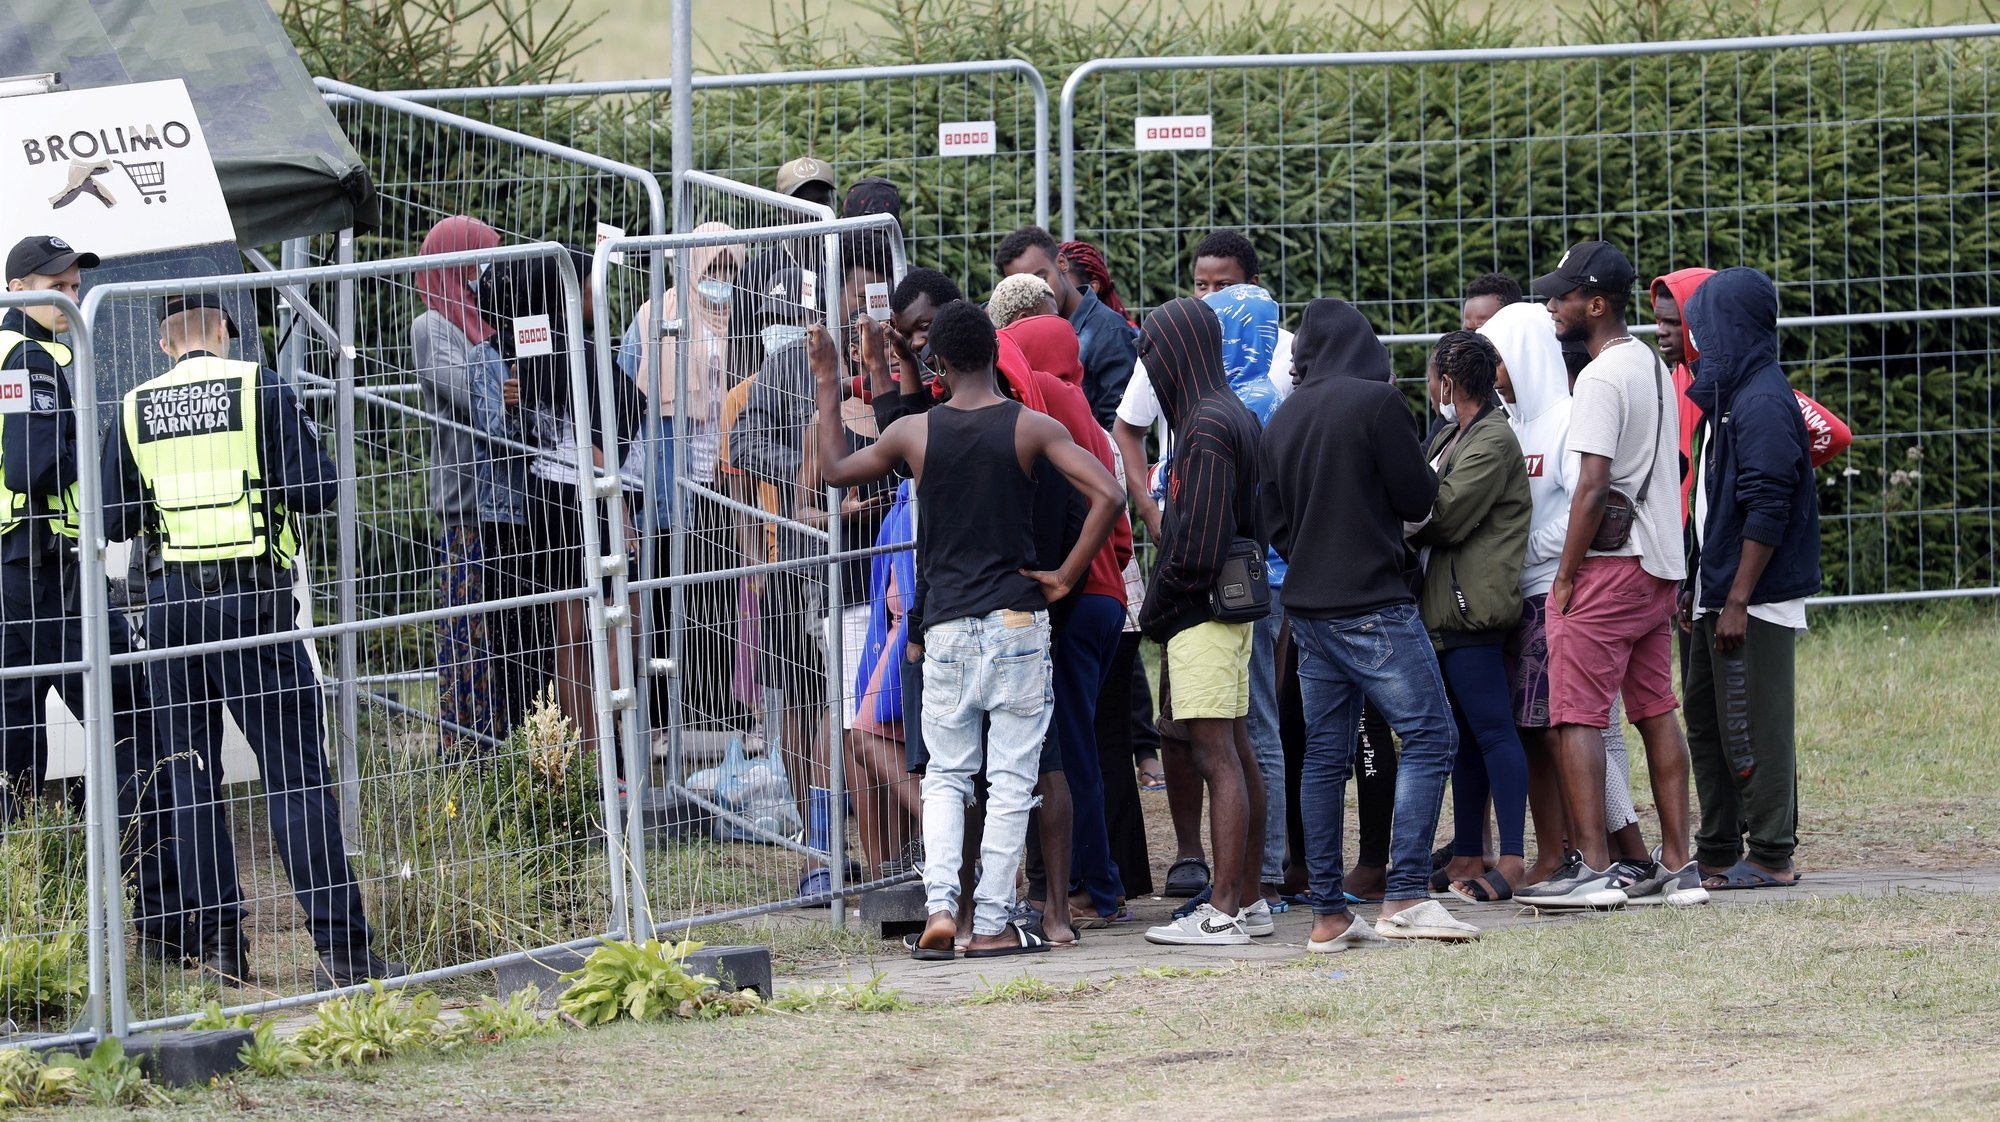 epa09388795 Detained migrants waiting in line for buying goods from an off-site store in a car at the migrant detention centre in Vydeniai, Lithuania, 02 August 2021. Some 3,800 migrants were detained in Lithuania in 2021 so far and officials have accused the Belarus regime to be behind an increased number of migrants crossing into Lithuania.  EPA/TOMS KALNINS